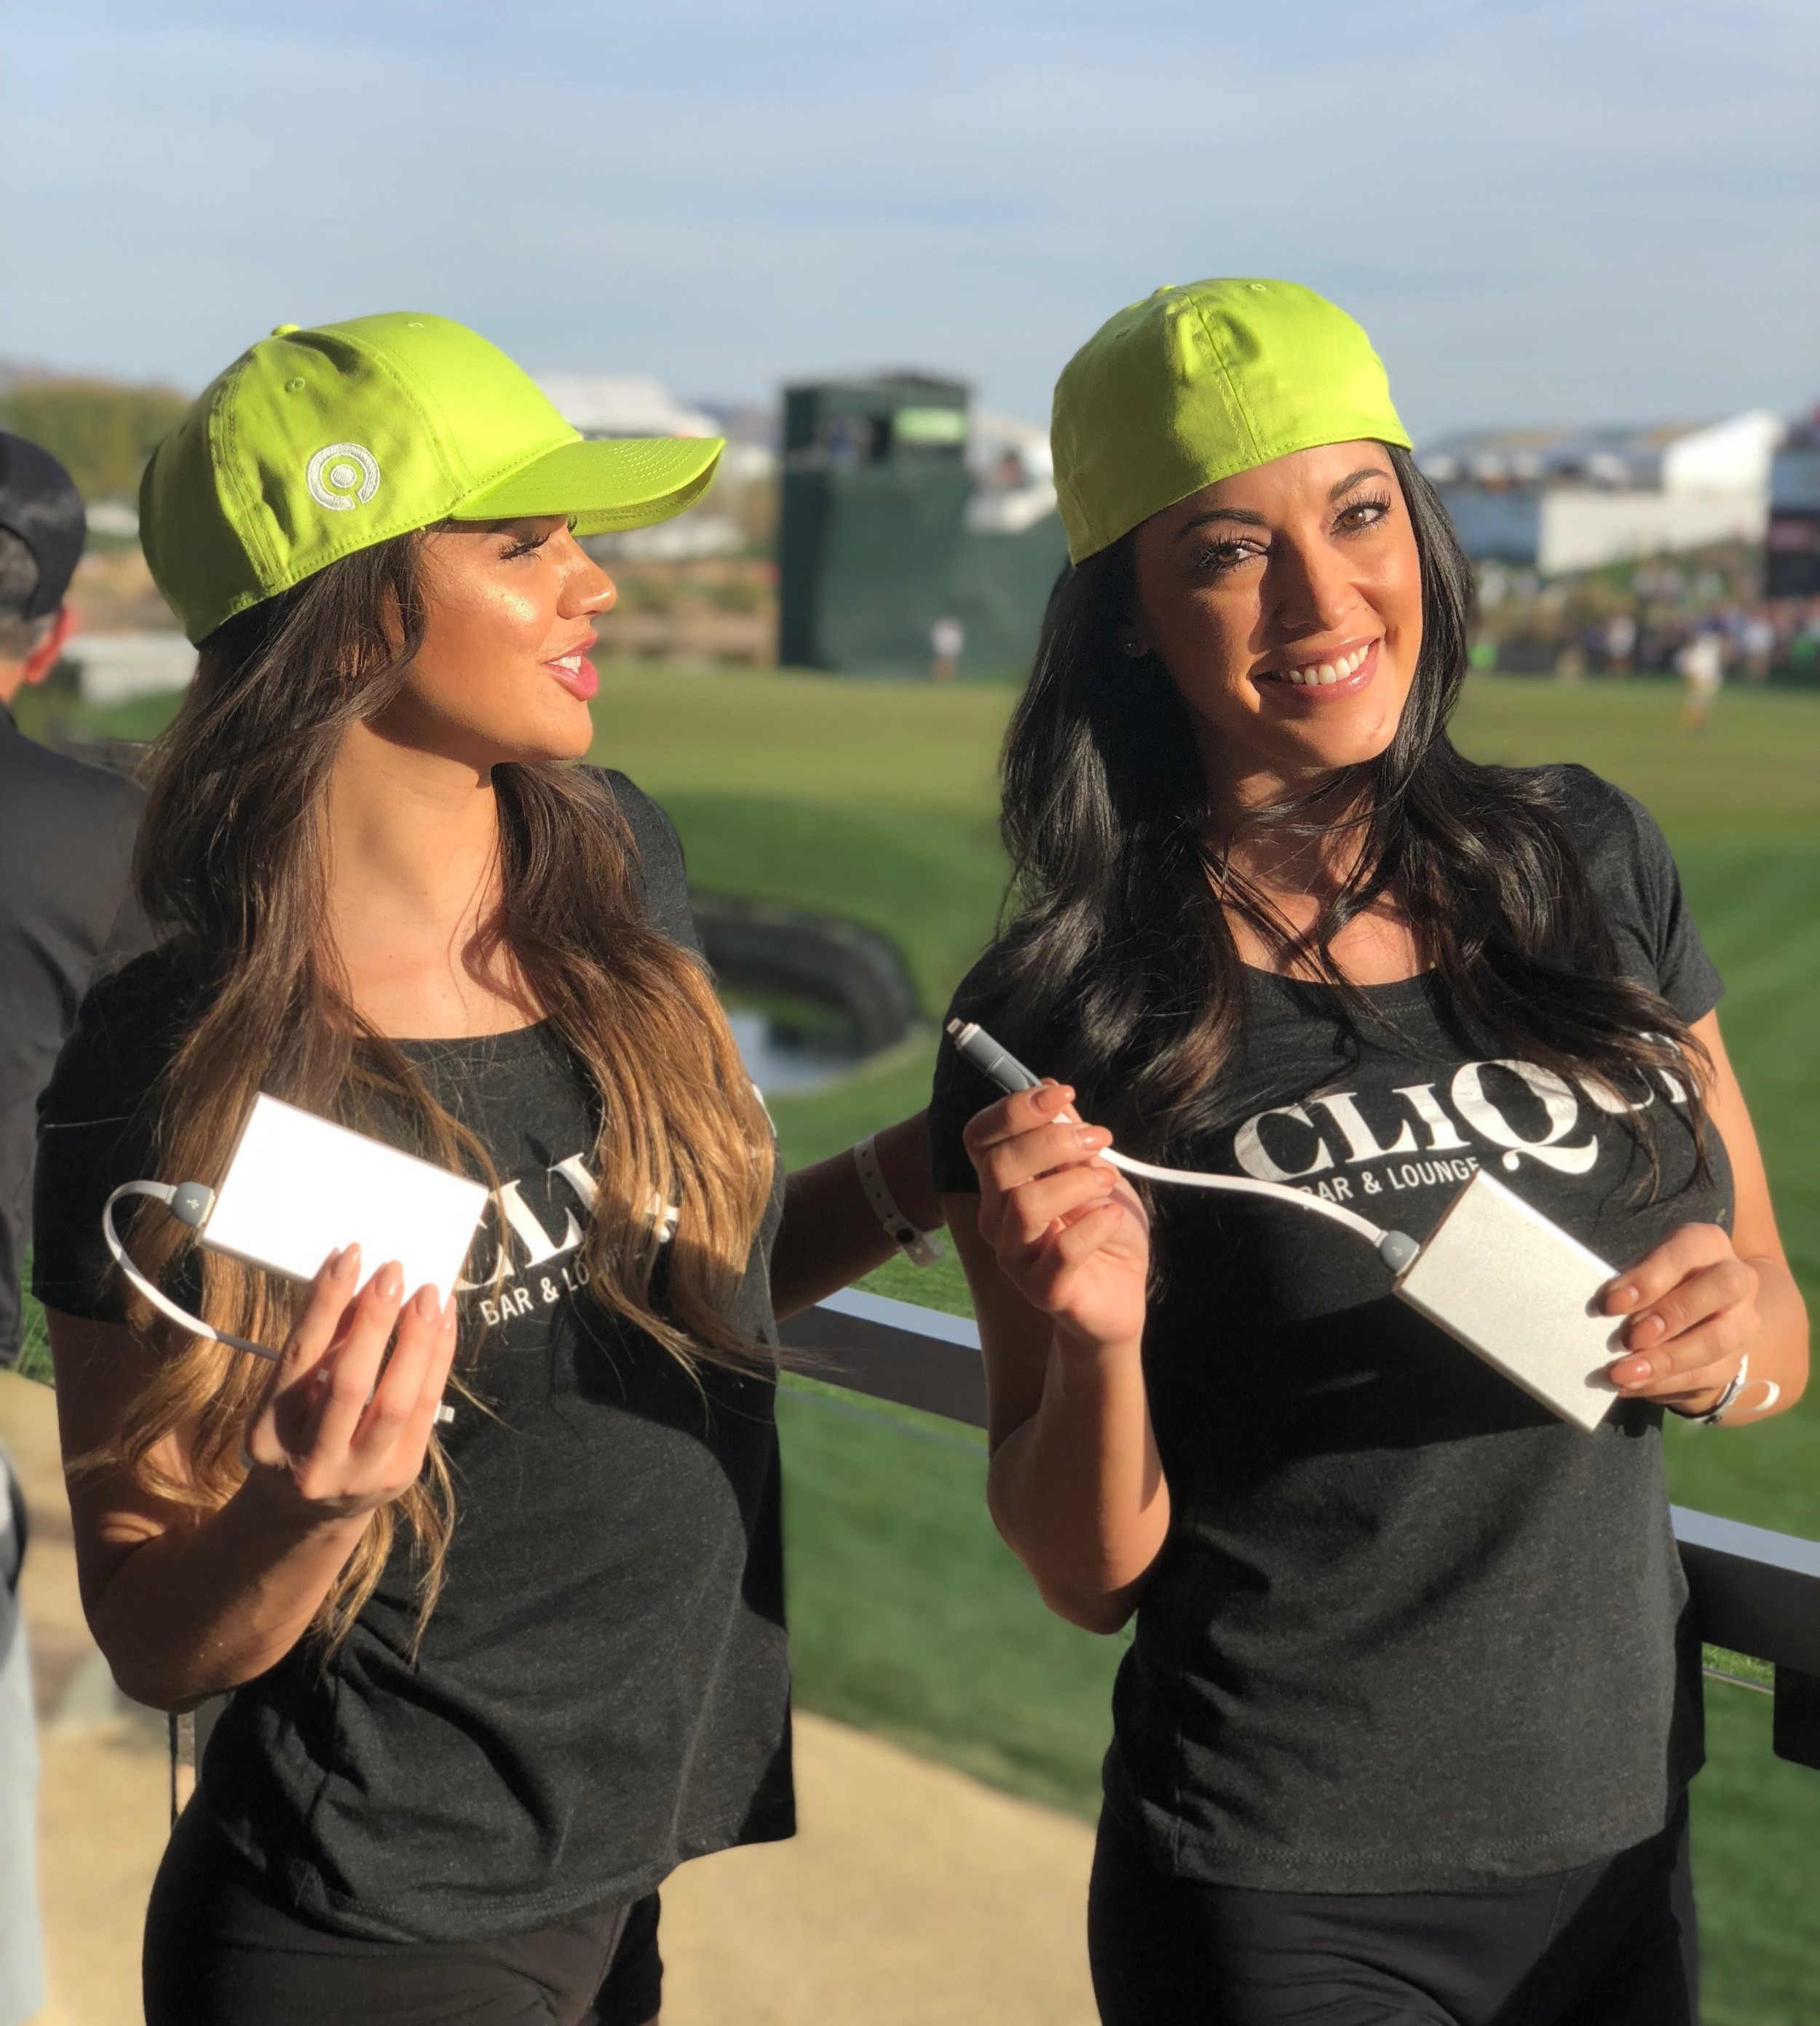 Look for our Juuice promotions team in the lime green hats.